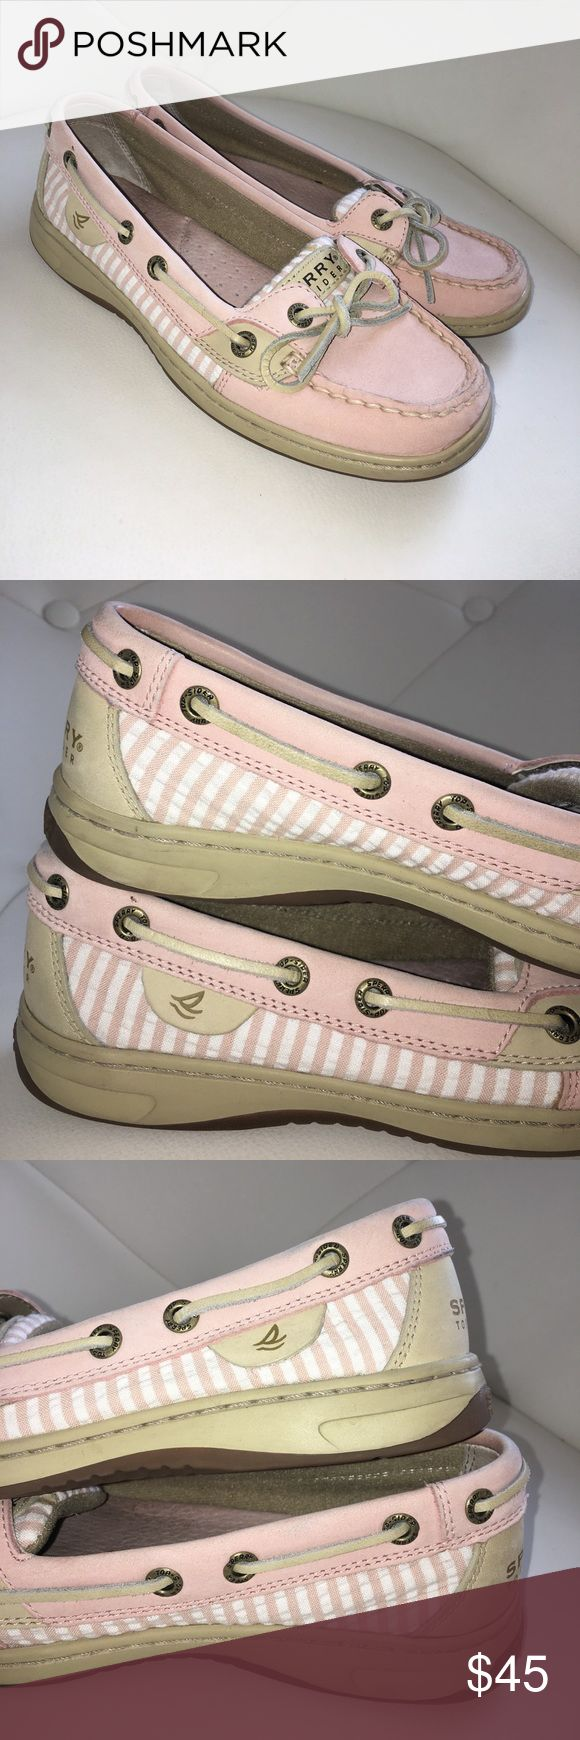 Pink and White Sperrys pink and white sperry boat shoes. in excellent condition but they have been worn a couple of times.  there is a small stain on the tongue of the right shoe that is shown in the last picture. Sperry Top-Sider Shoes Flats & Loafers